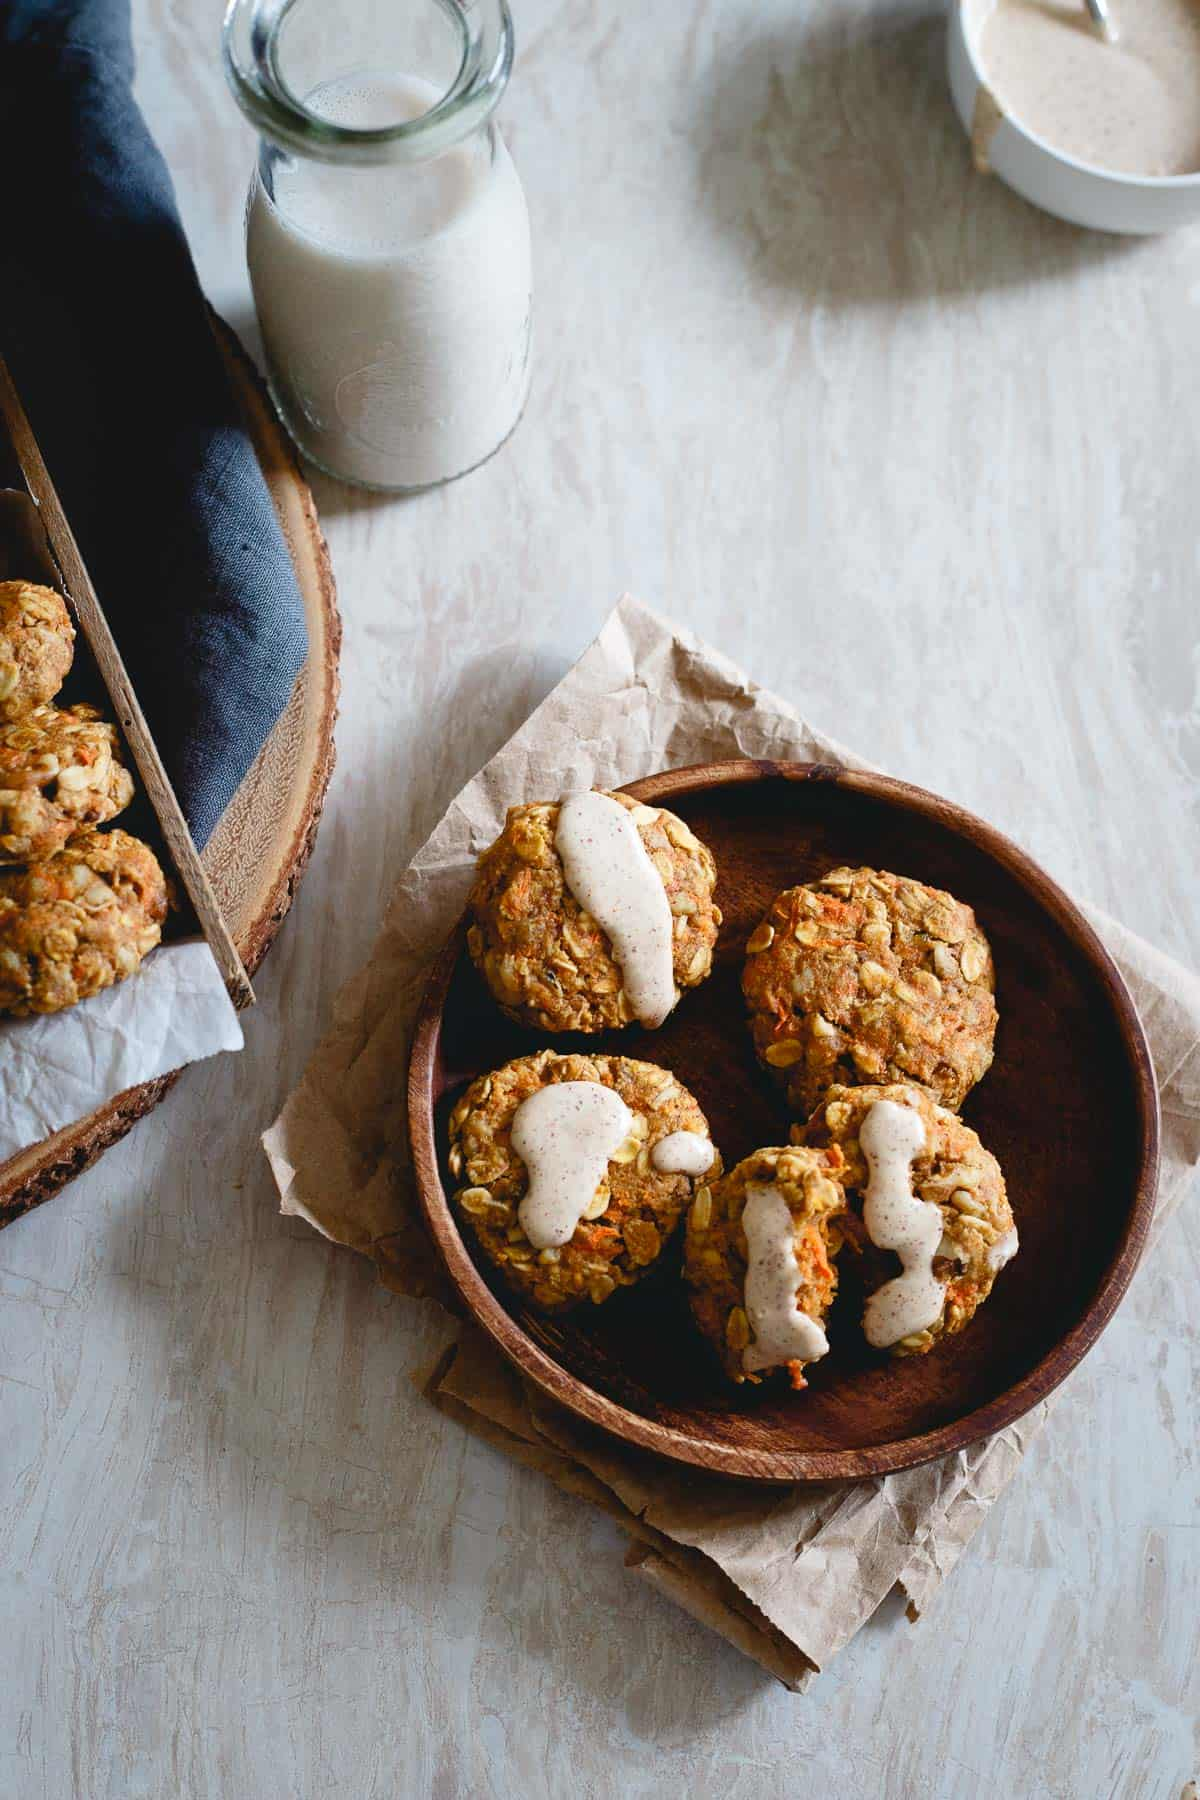 Real carrots, raisins, ginger, lemon zest and walnuts are packed into these healthy carrot cake cookies drizzled with a cream cheese almond butter icing.